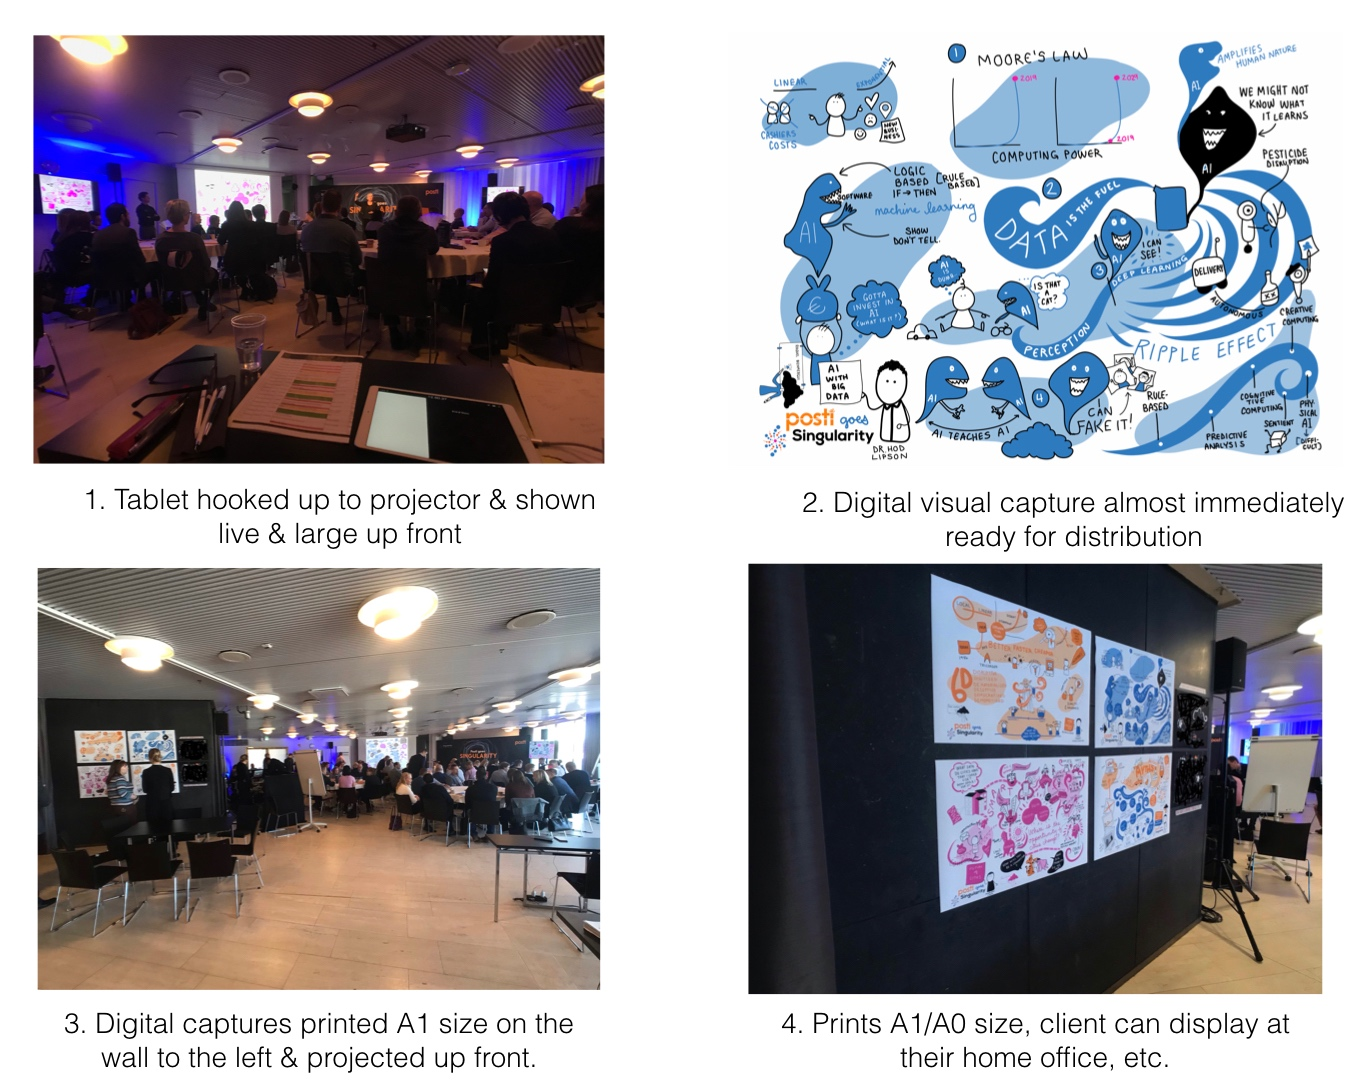 This is an example from a multiday event with The Finnish Post & Singularity University